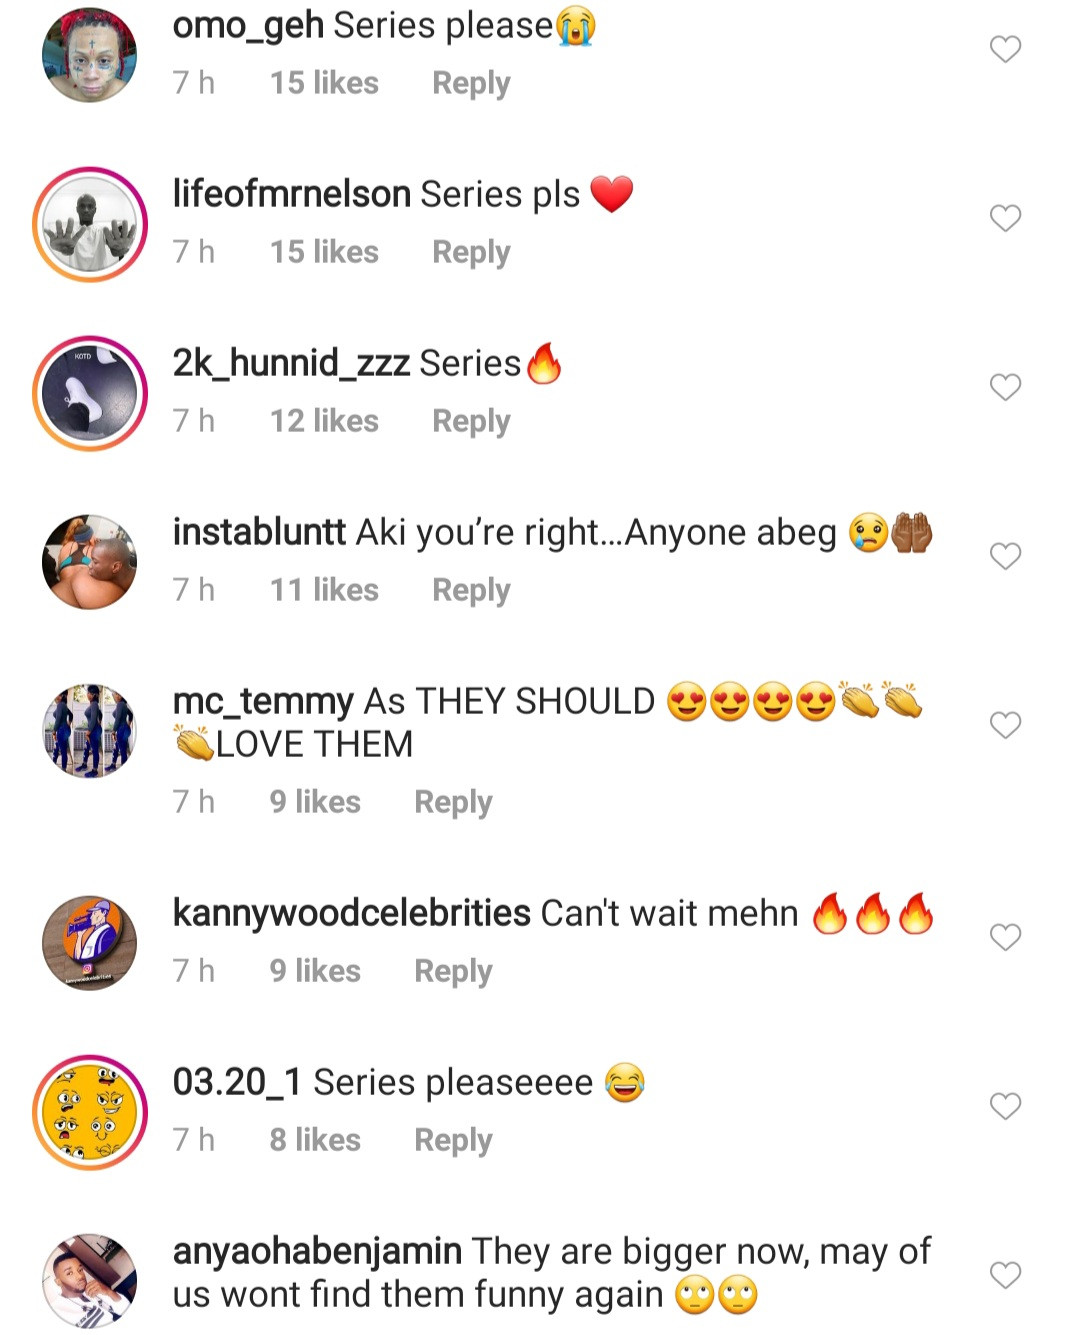 Should we give you a movie or tv series - Actors Aki and Paw Paw asks Nigerians as they hint on returning to acting as a duo